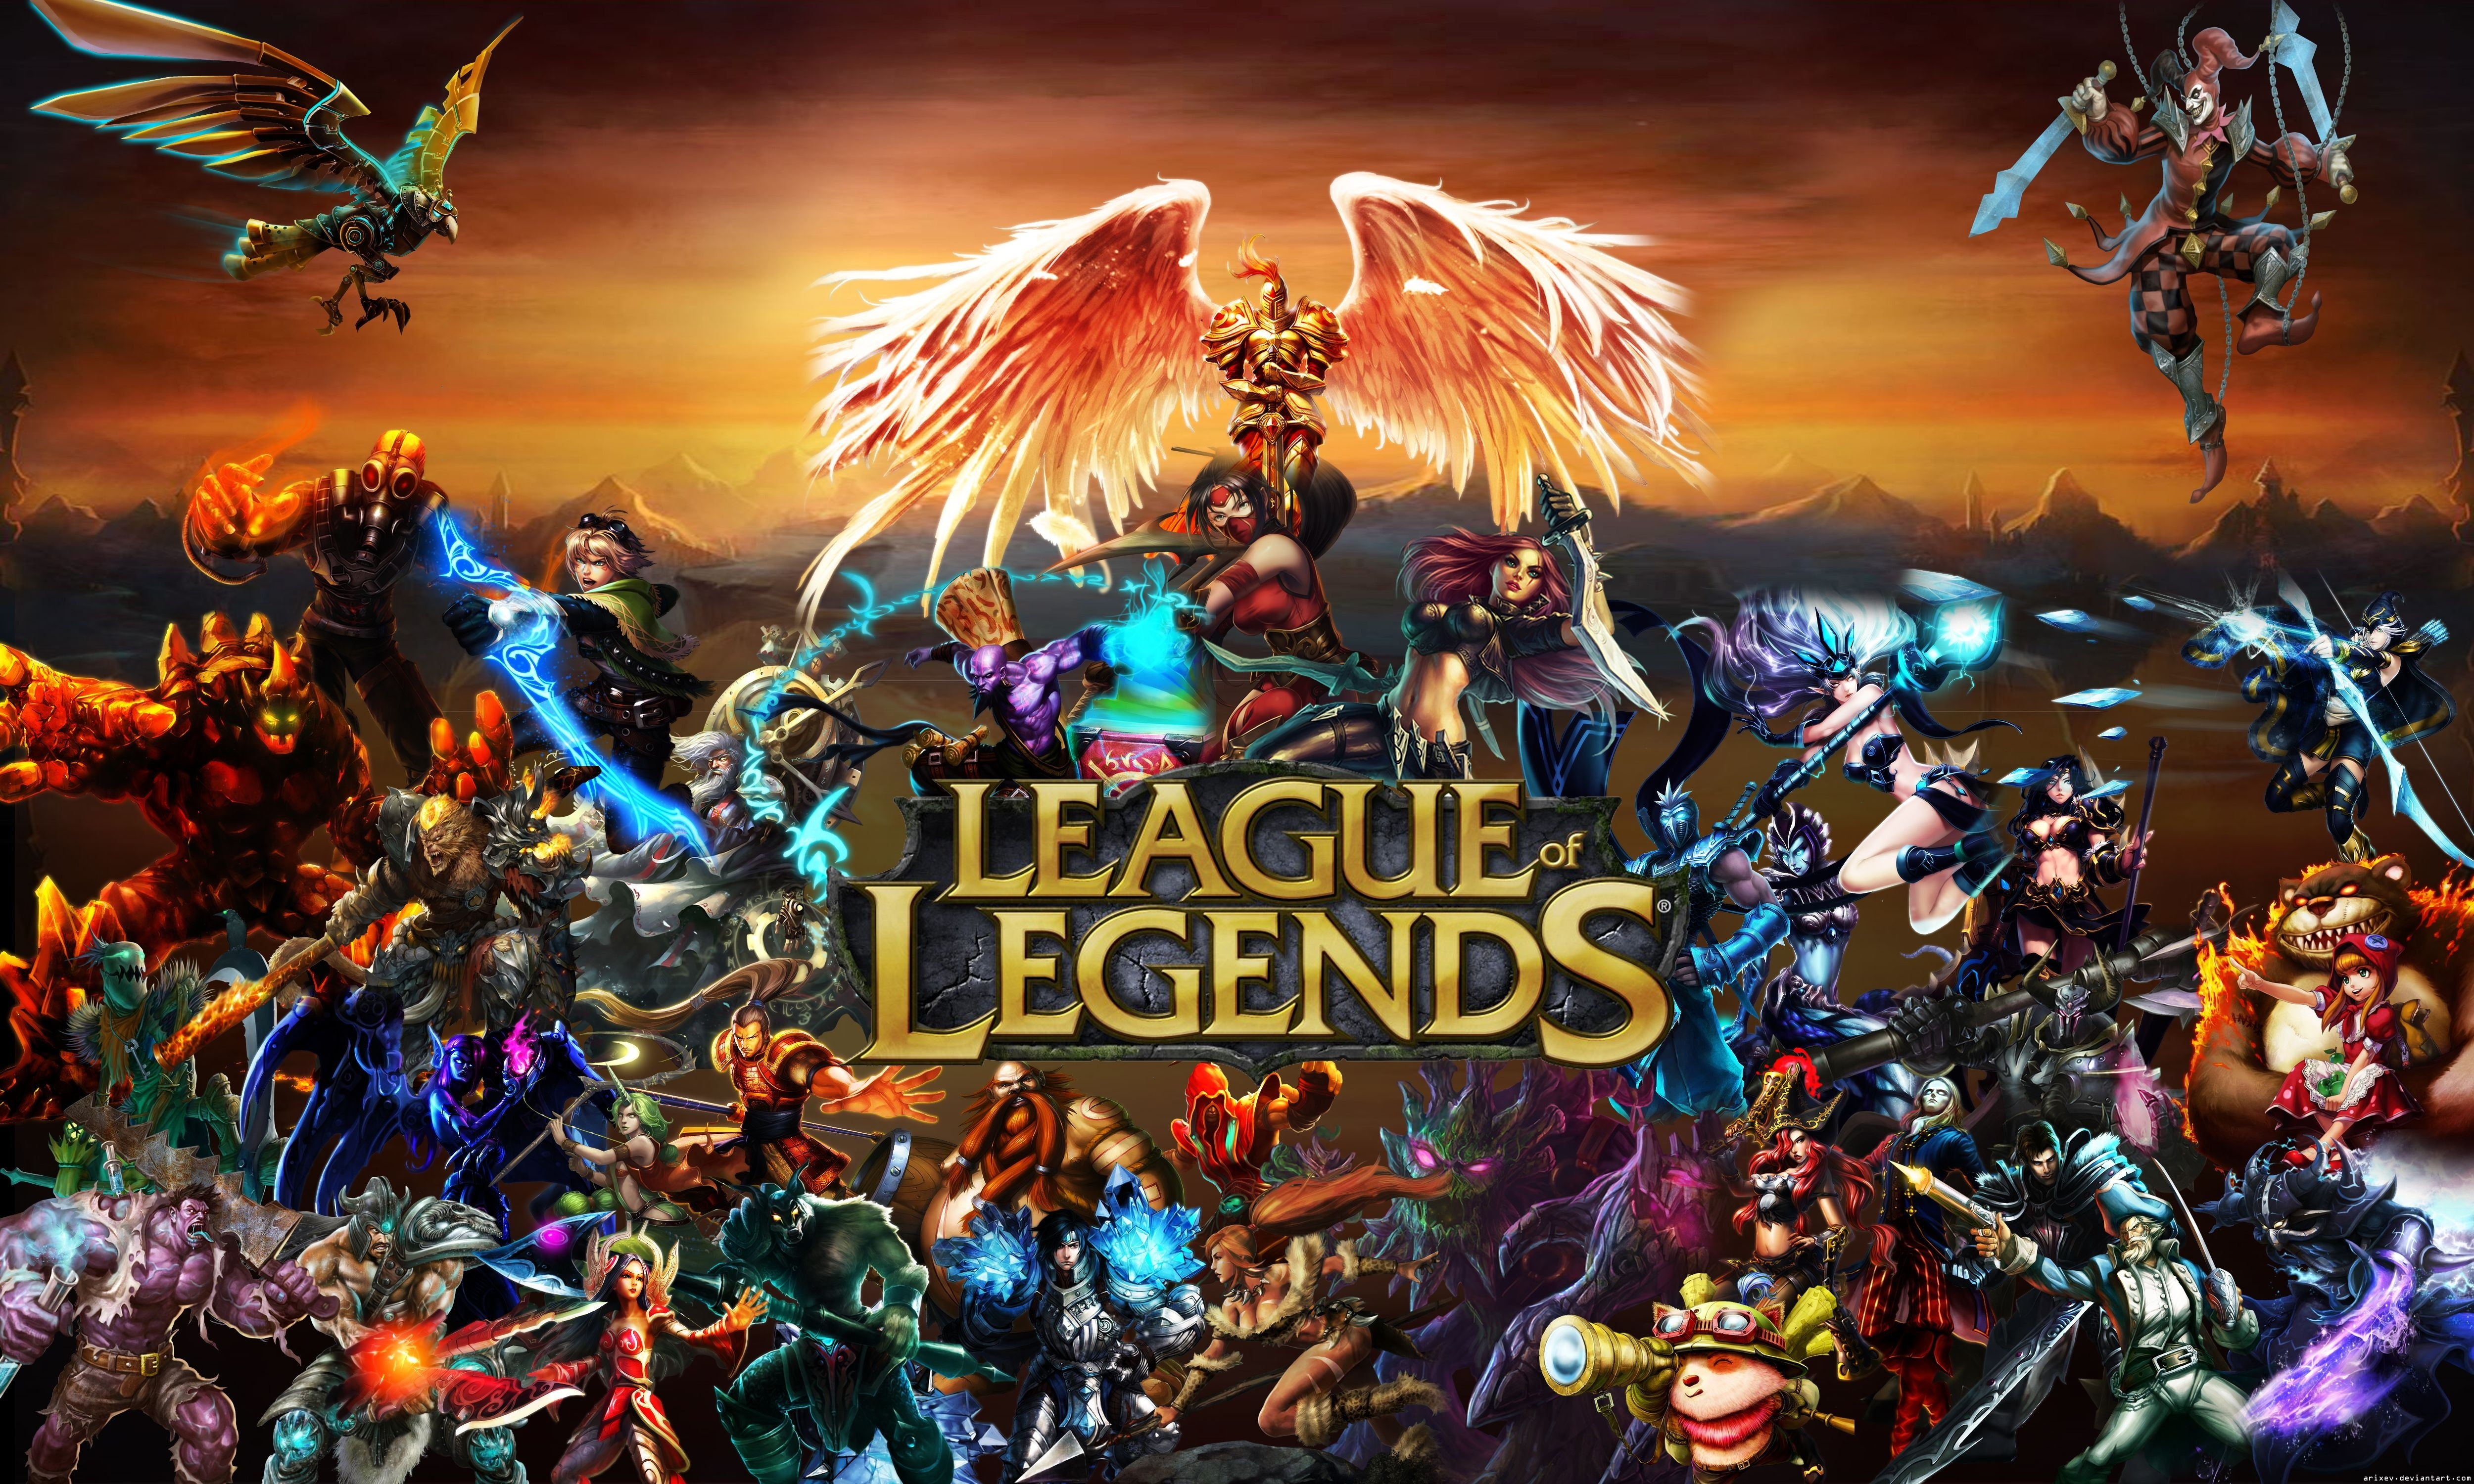 Fondos de pantalla League Of Legends Personajes Poster